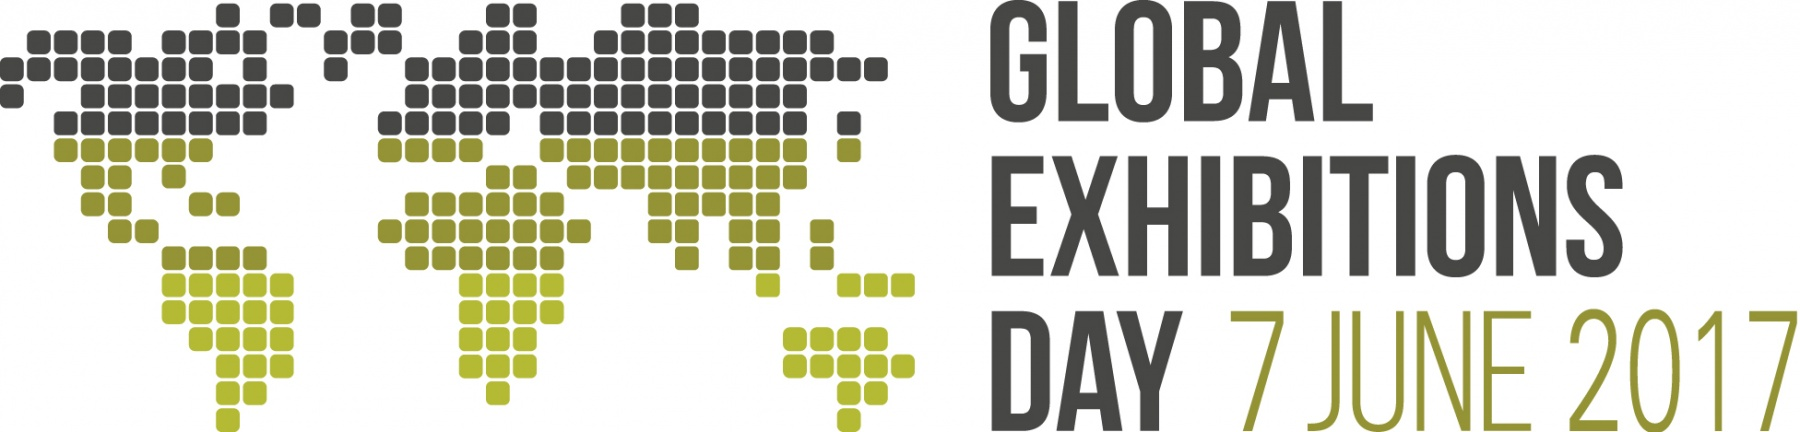 global-exhibitions-day